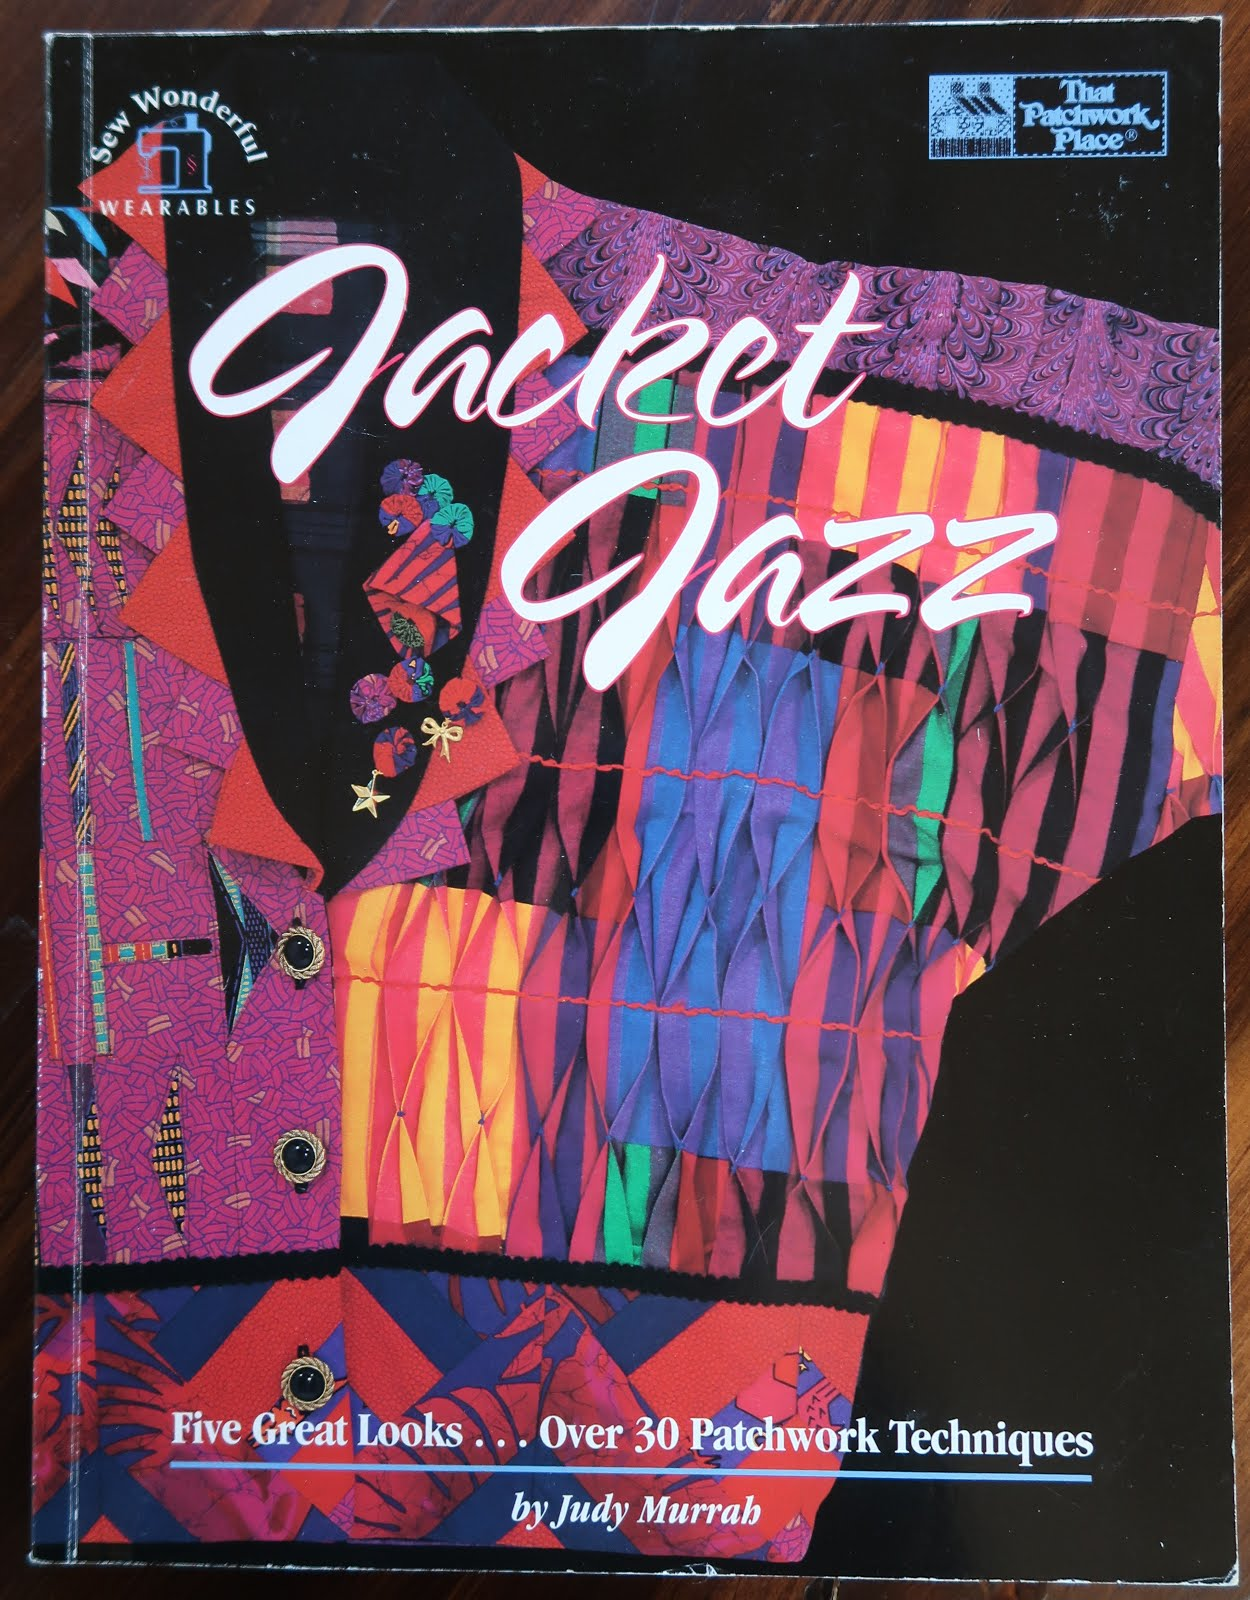 Jacket Jazz (click!)